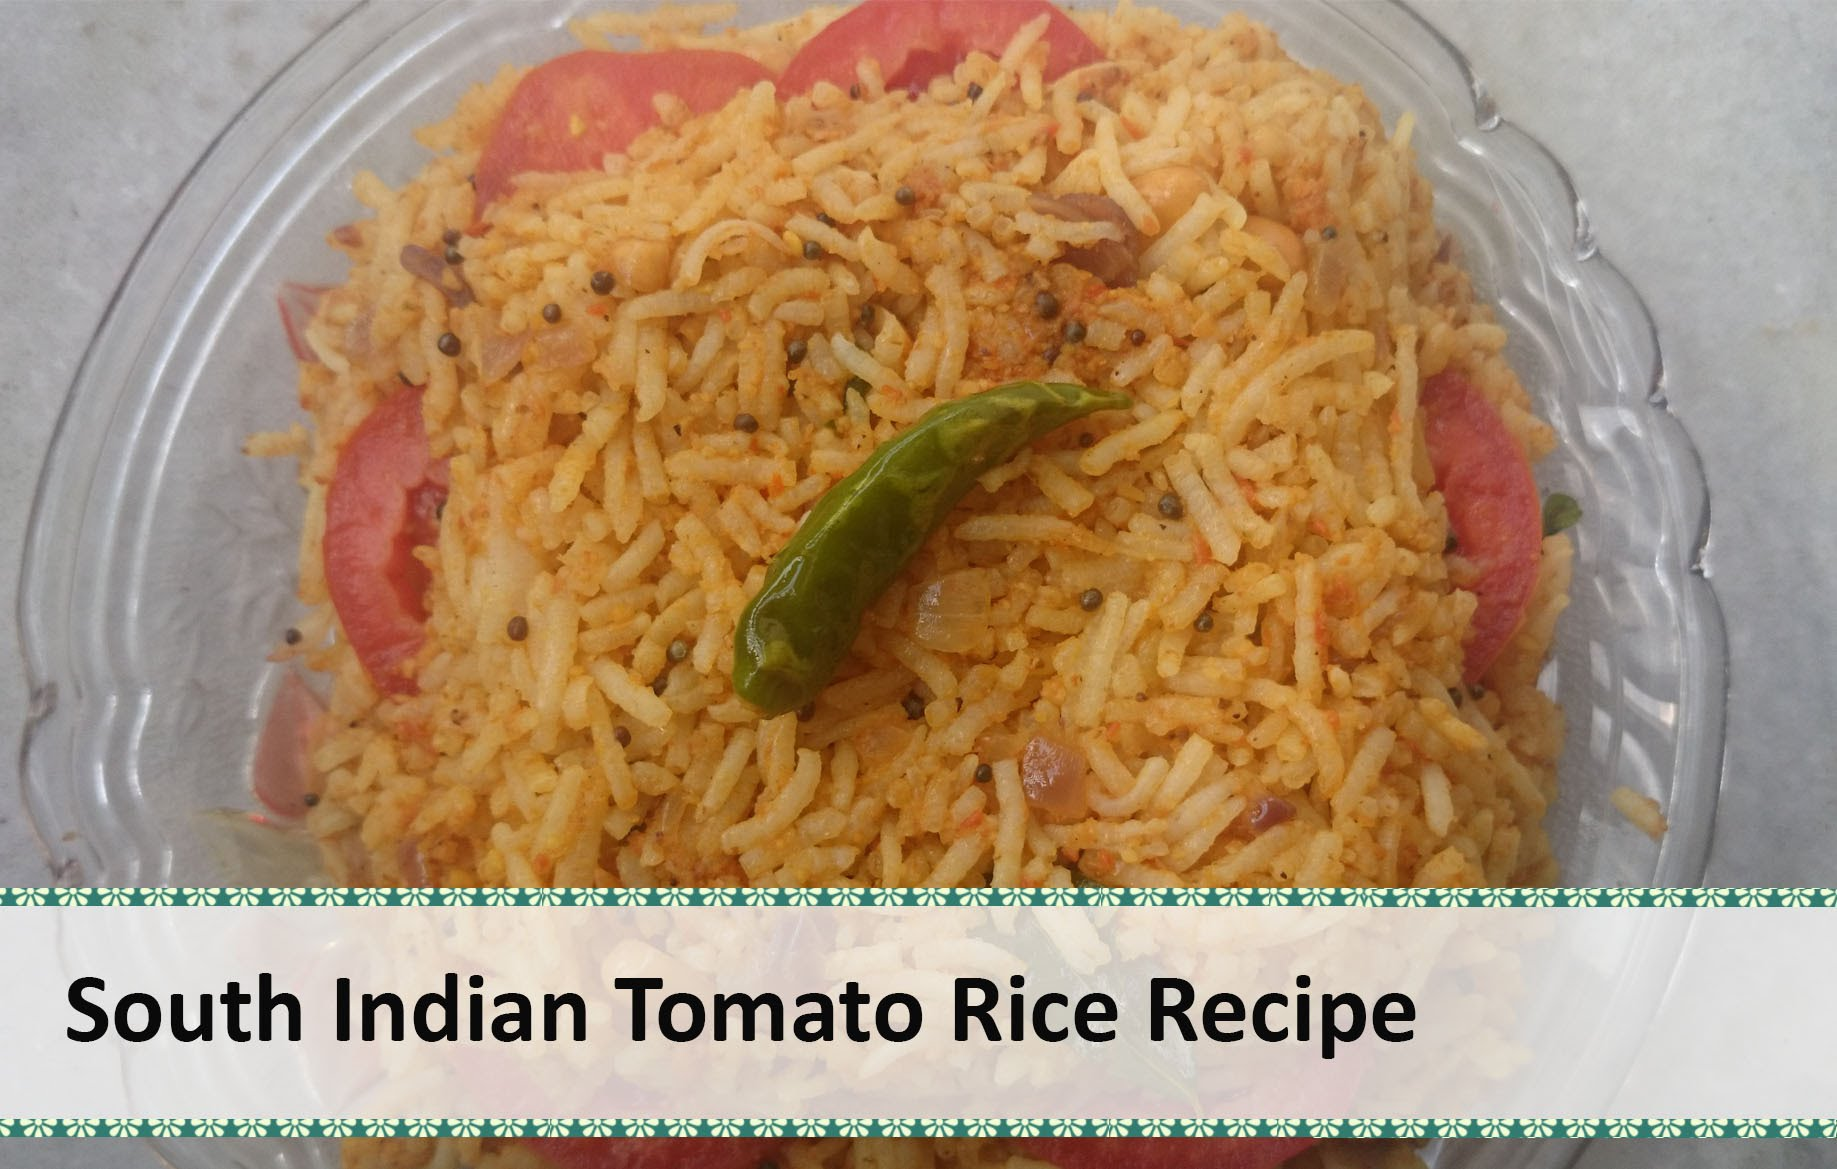 Picture of South Indian Tomato Rice Recipe